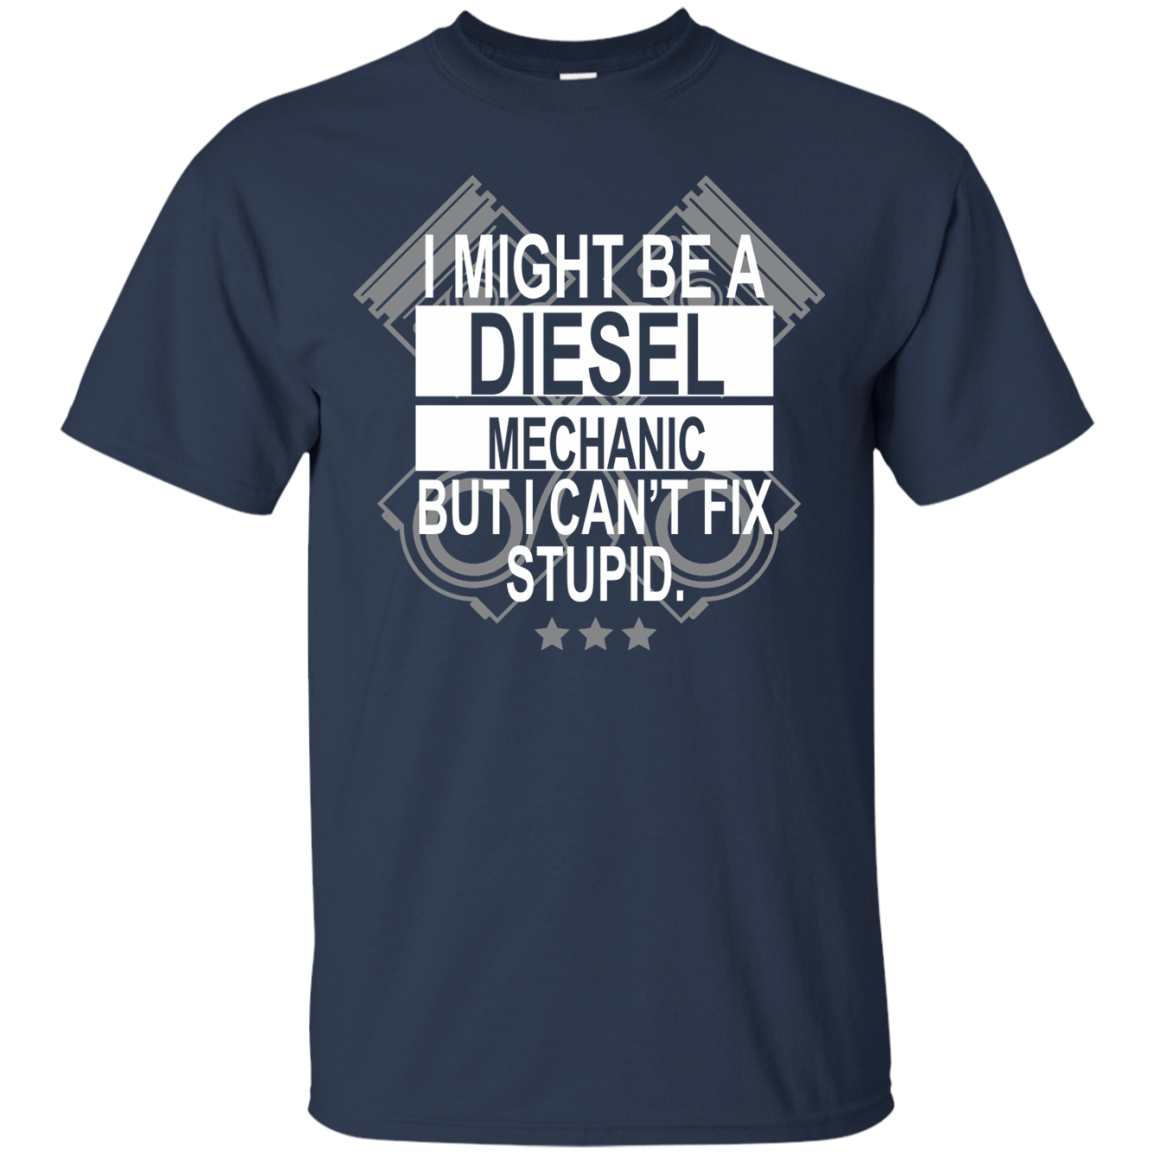 Awesome Diesel Mechanic Shirt T-Shirt & Hoodie I Might Be Diesel Mechanic But I Can't Fix Stupid - The Sun Cat